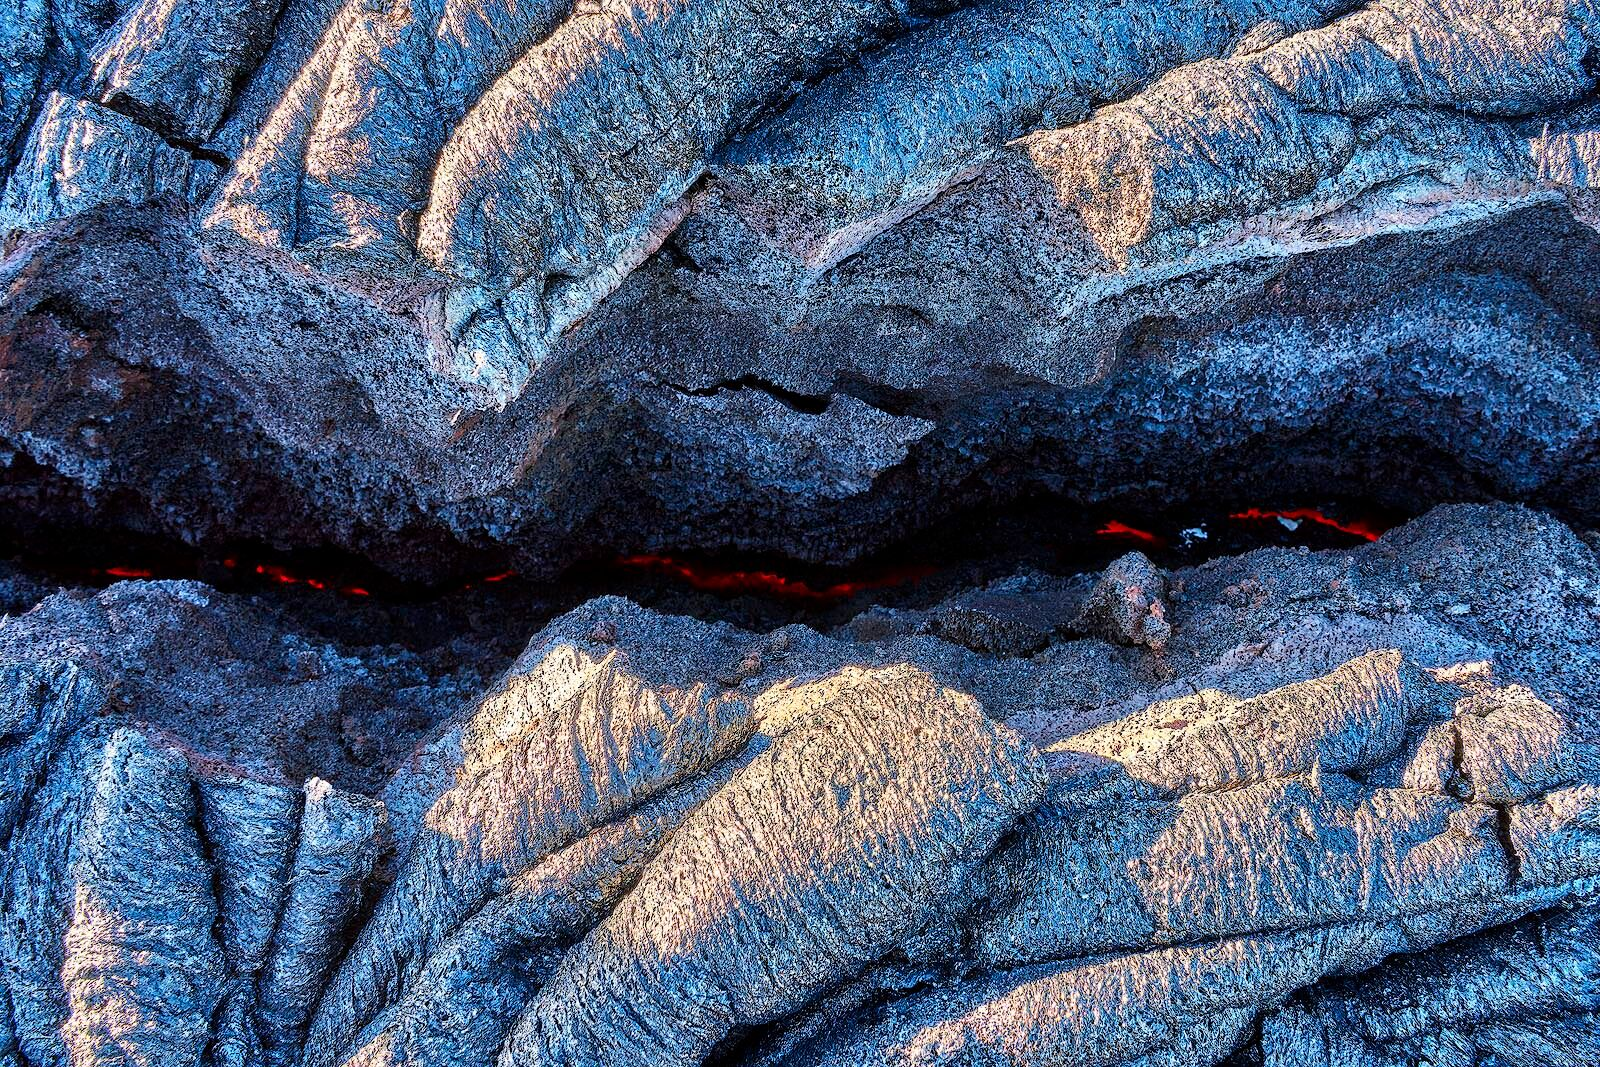 the earth is glowing red hot through a crack in the dried lava on the big island of Hawaii.  Lava Photography by Andrew Shoemaker